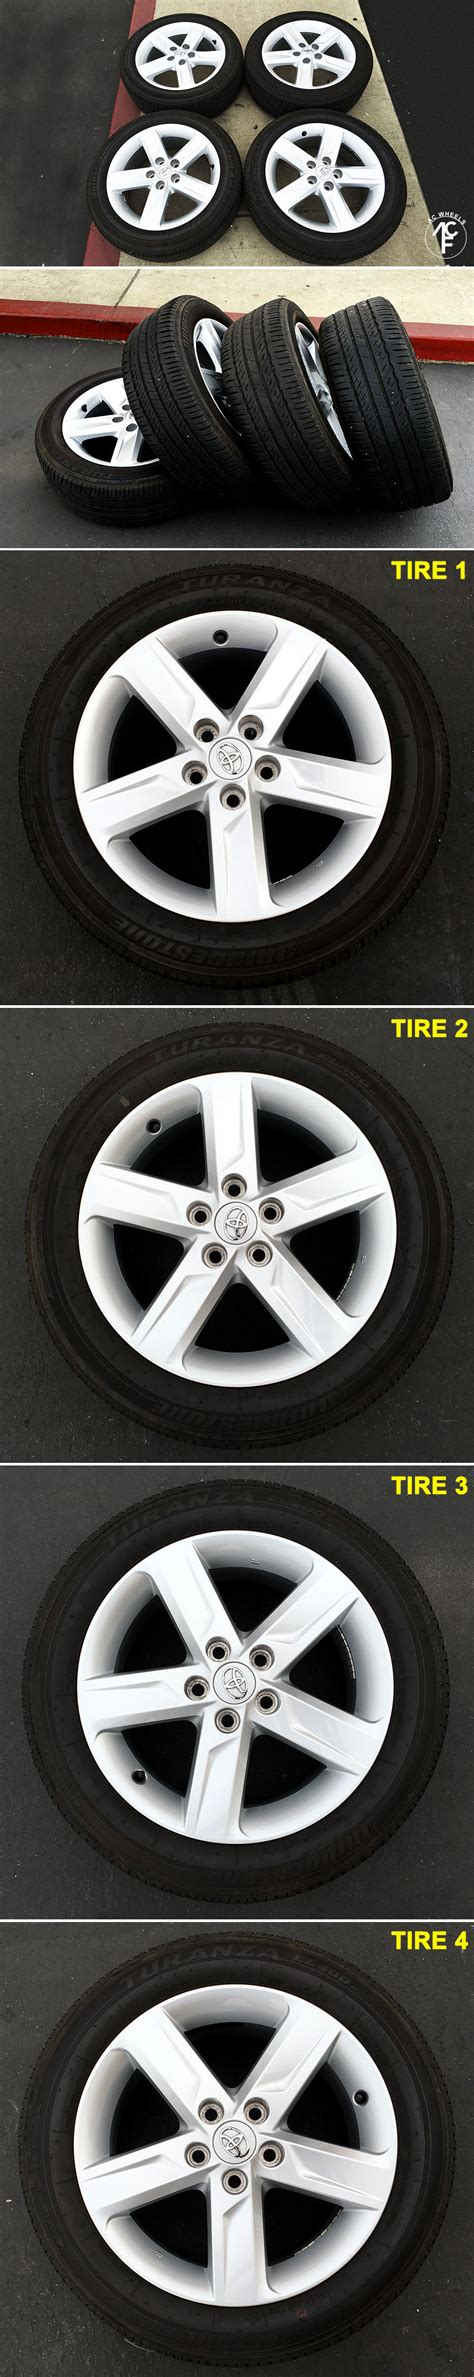 17x7 2014 toyota camry factory oem wheels rims and tires